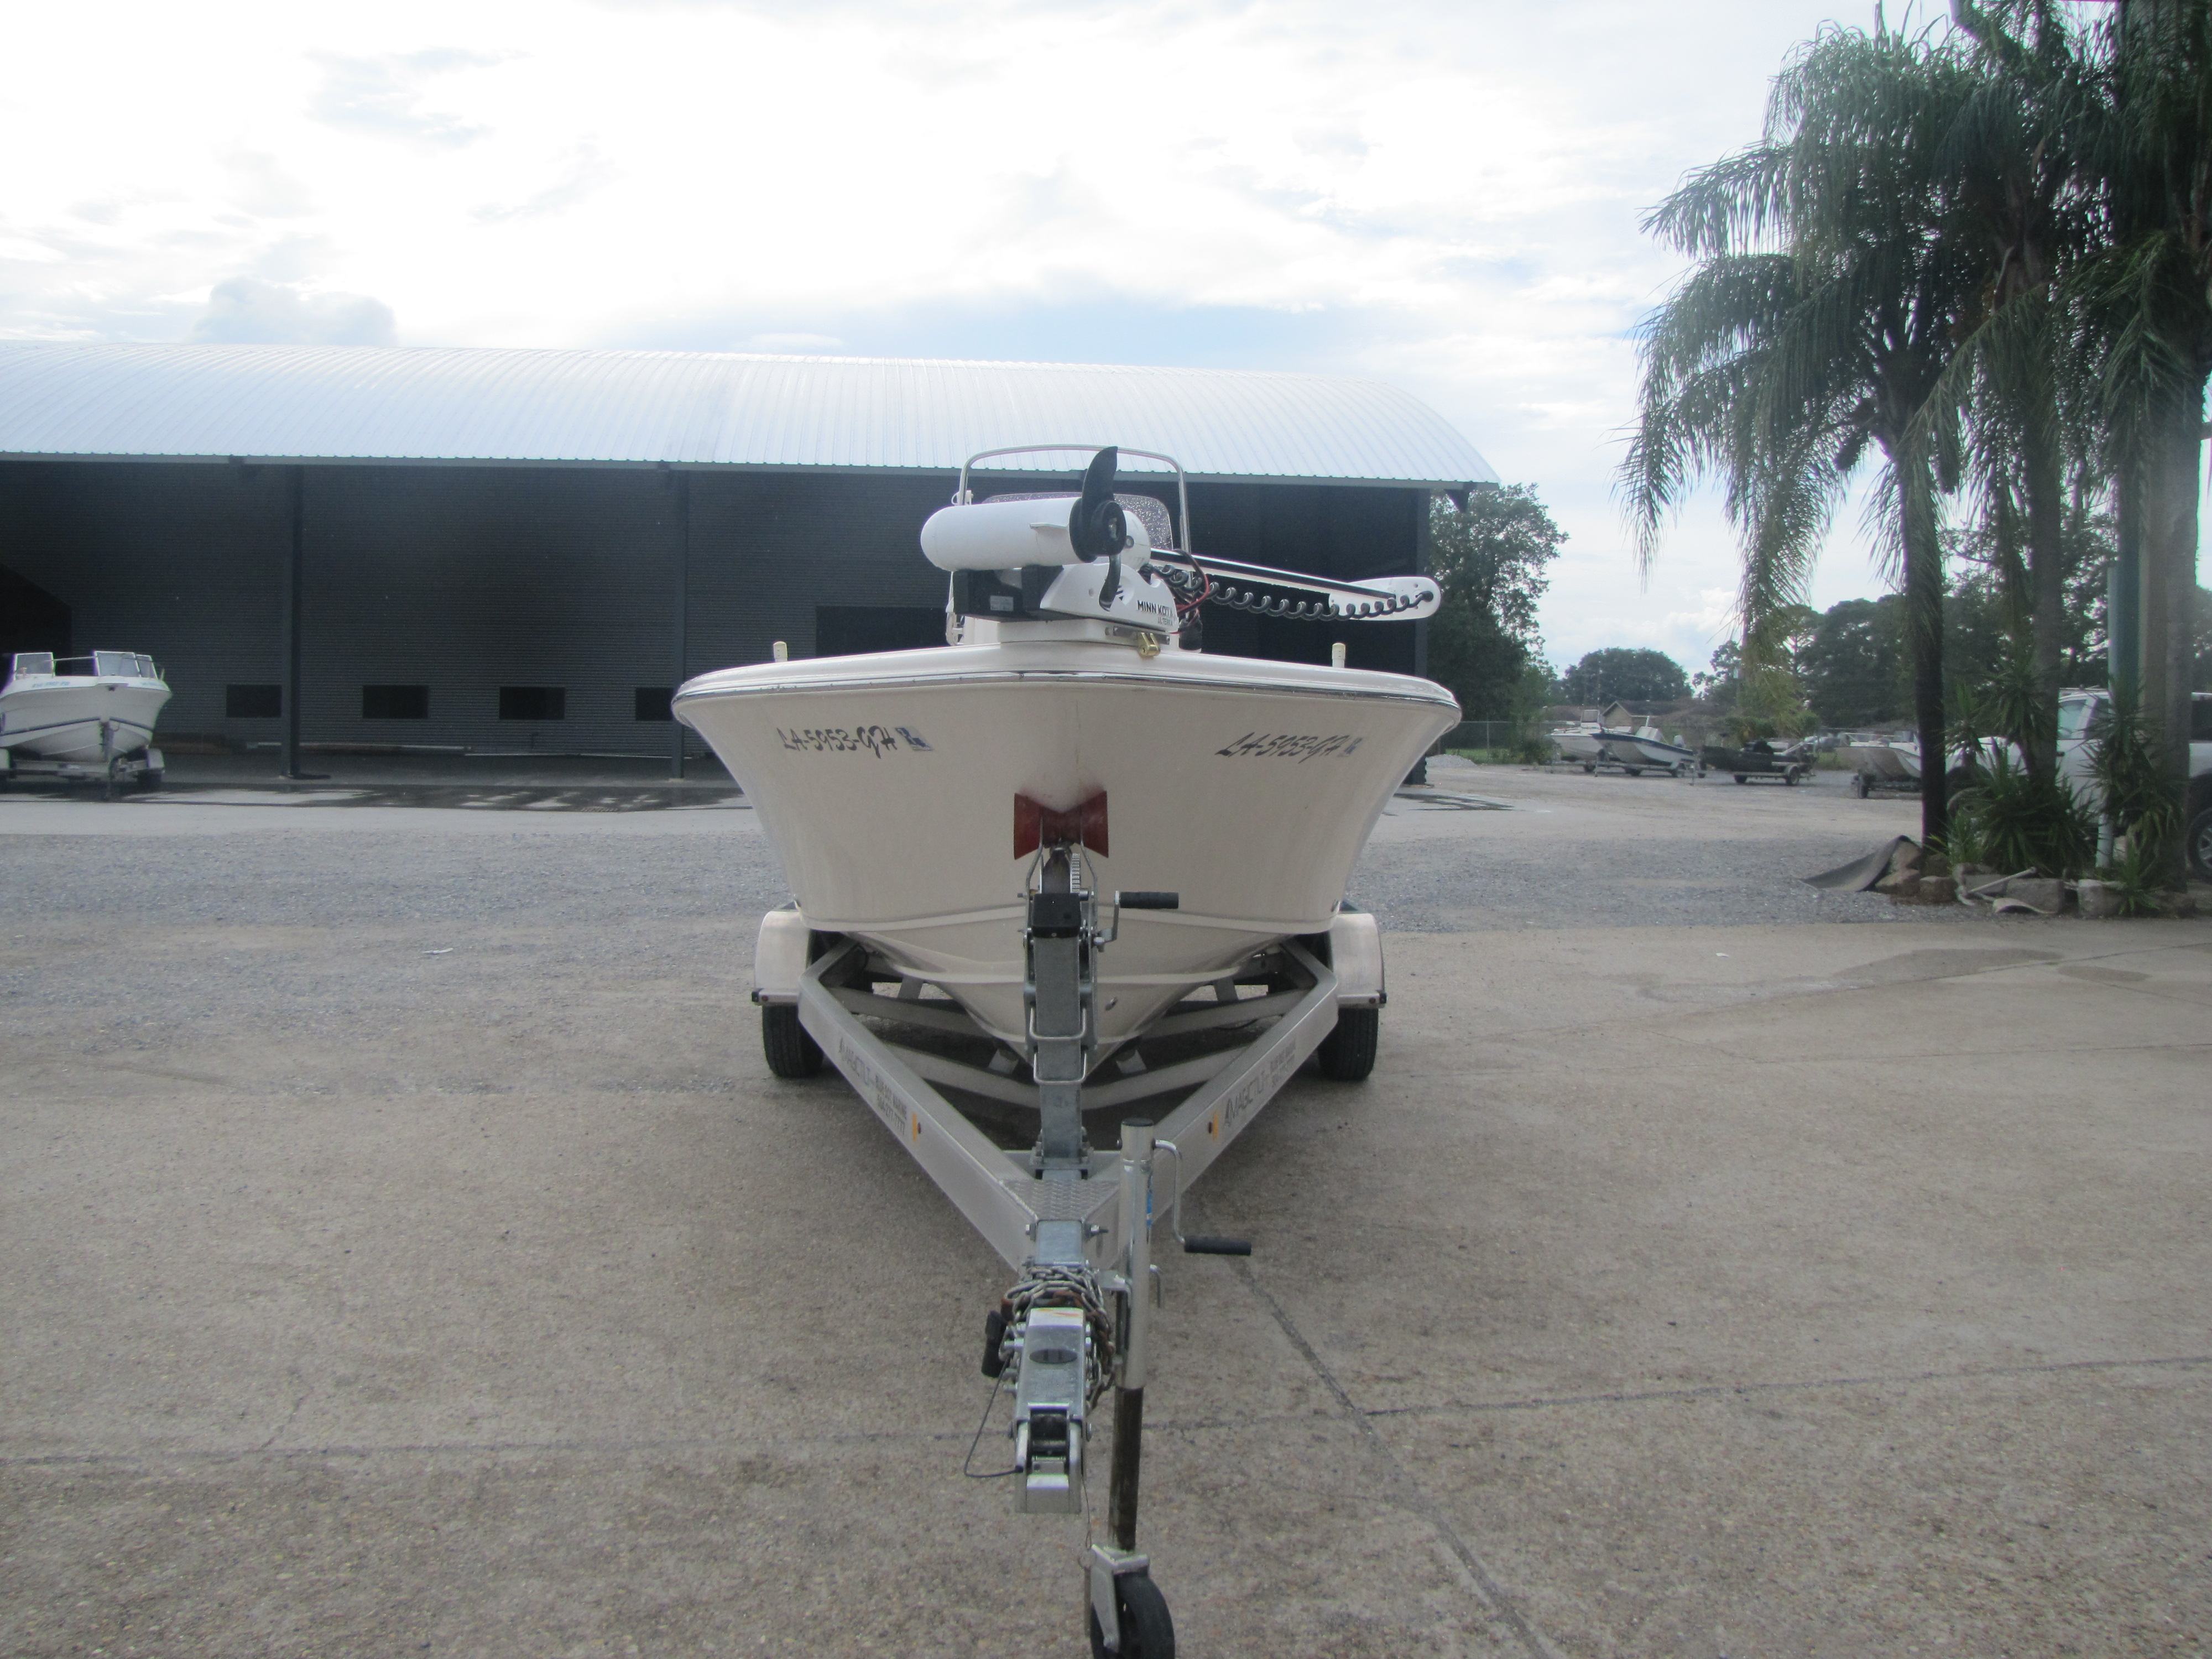 2018 Sea Chaser boat for sale, model of the boat is 23 LX & Image # 10 of 19